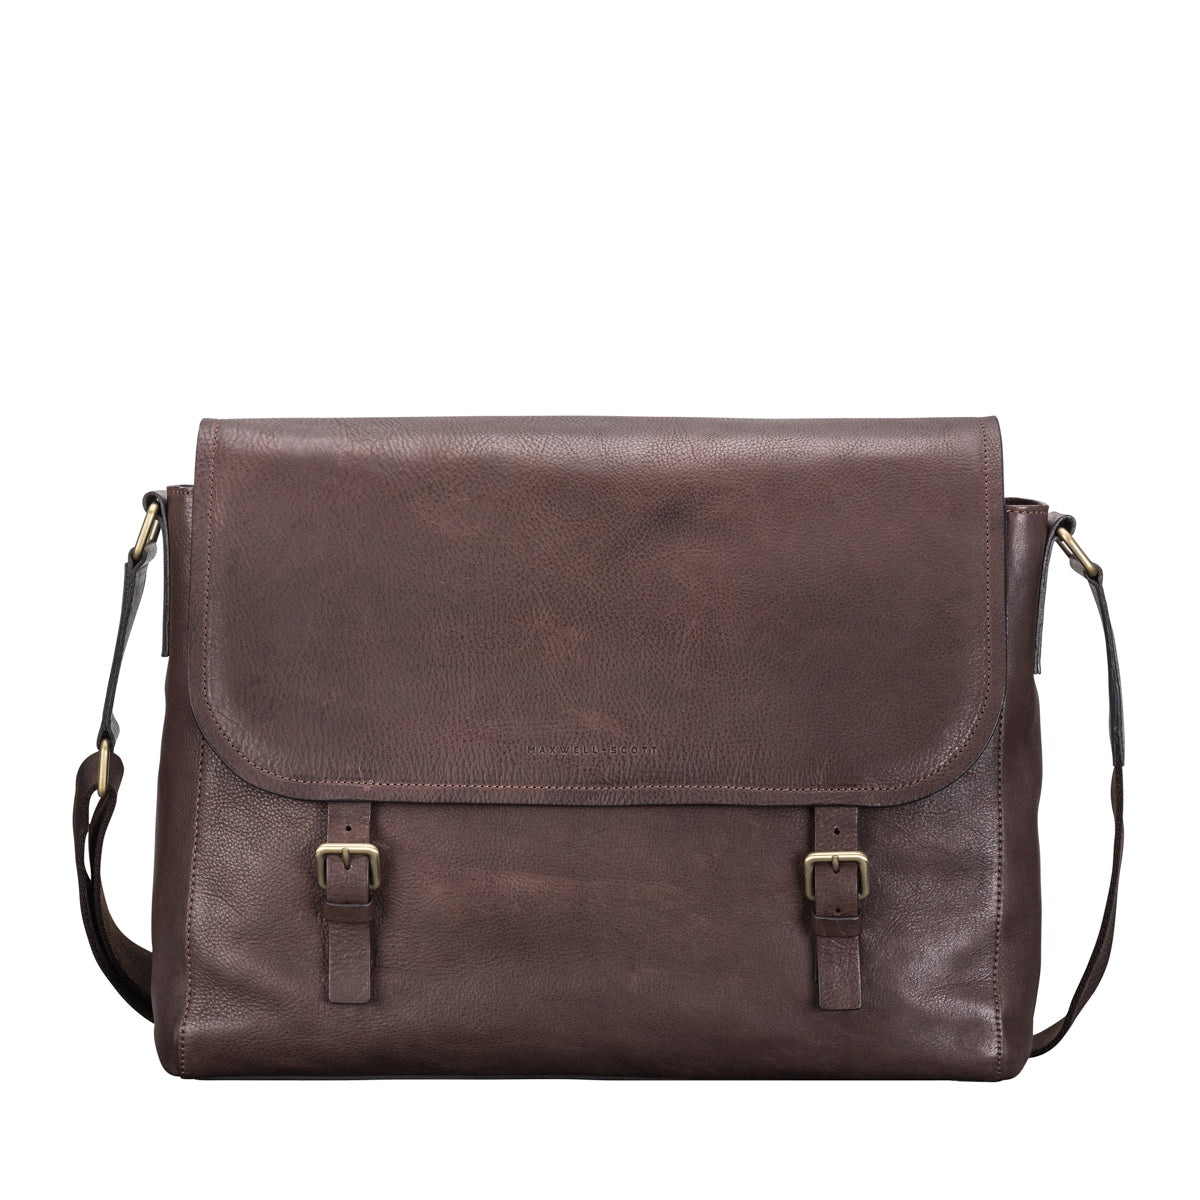 Image 1 of the 'Ravenna' Brown Leather Classic Men's Satchel Bag